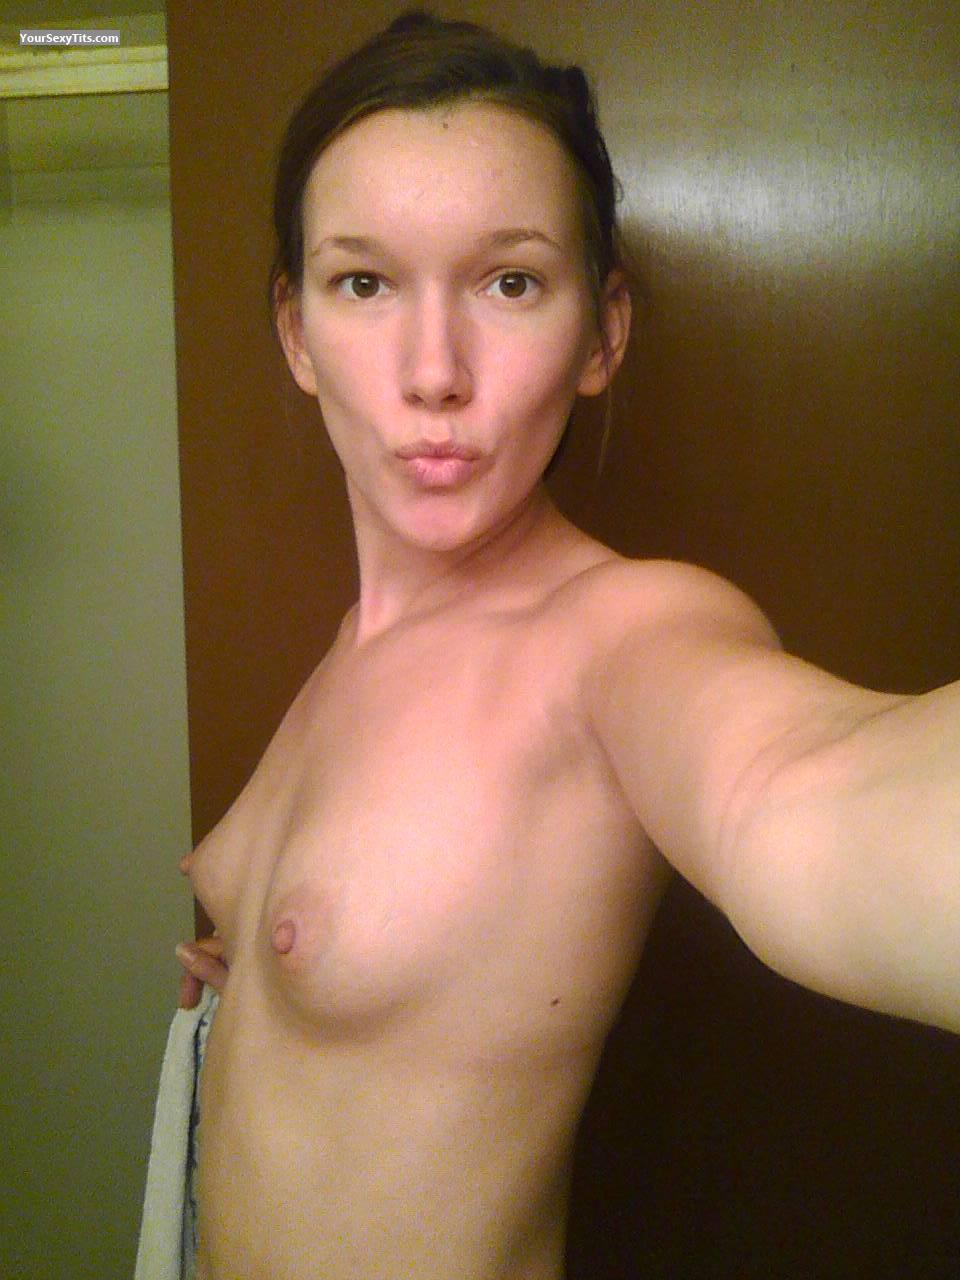 My Very small Tits Topless Selfie by College Girl